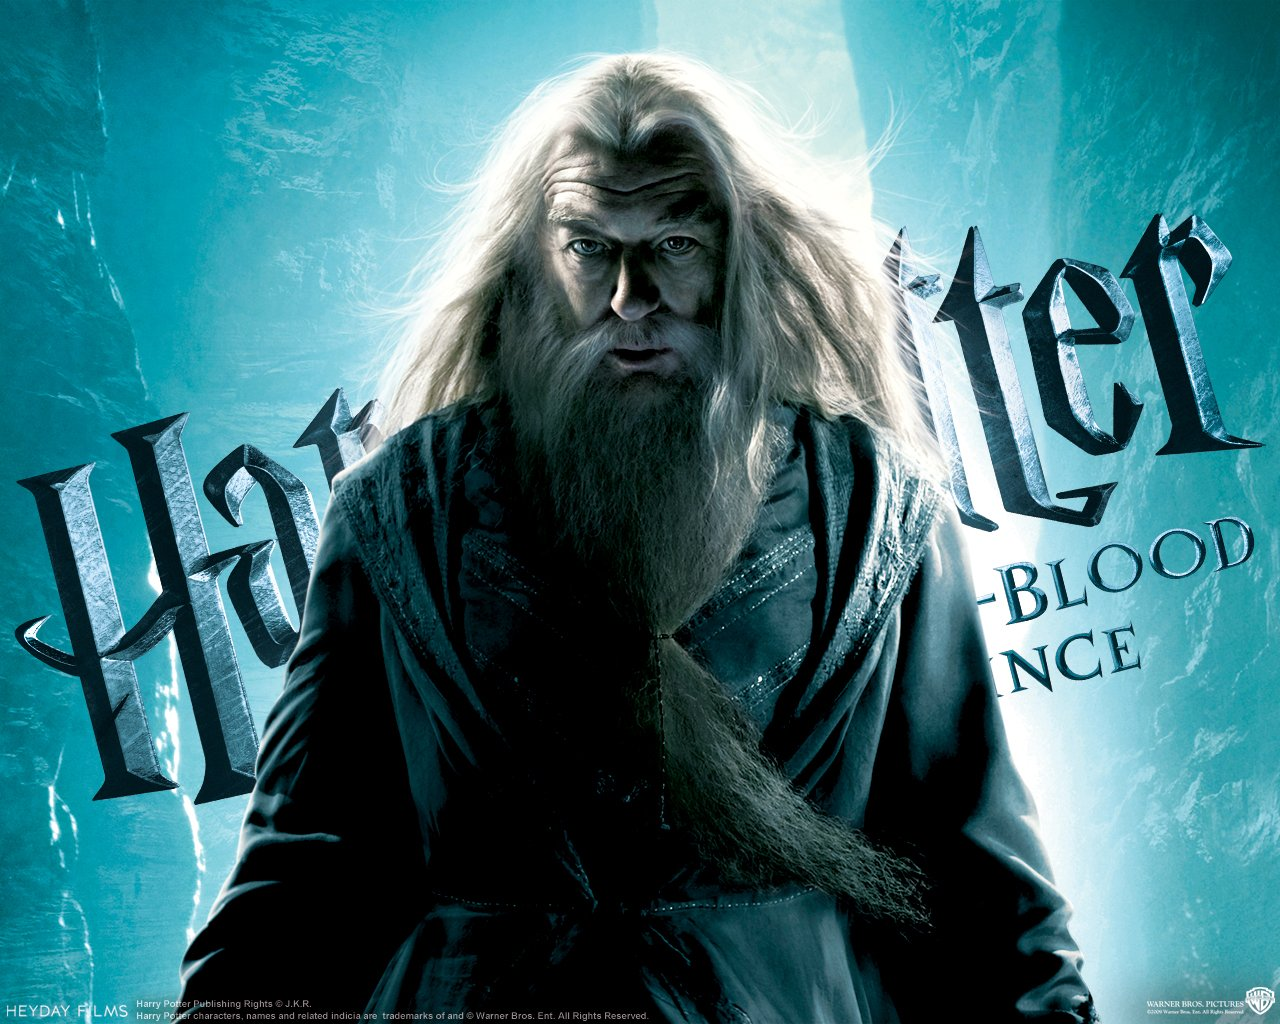 essays on harry potter and the half blood prince Watch harry potter and the half-blood prince starring daniel radcliffe in this kids & family on directv it's available to watch on tv, online, tablets, phone.